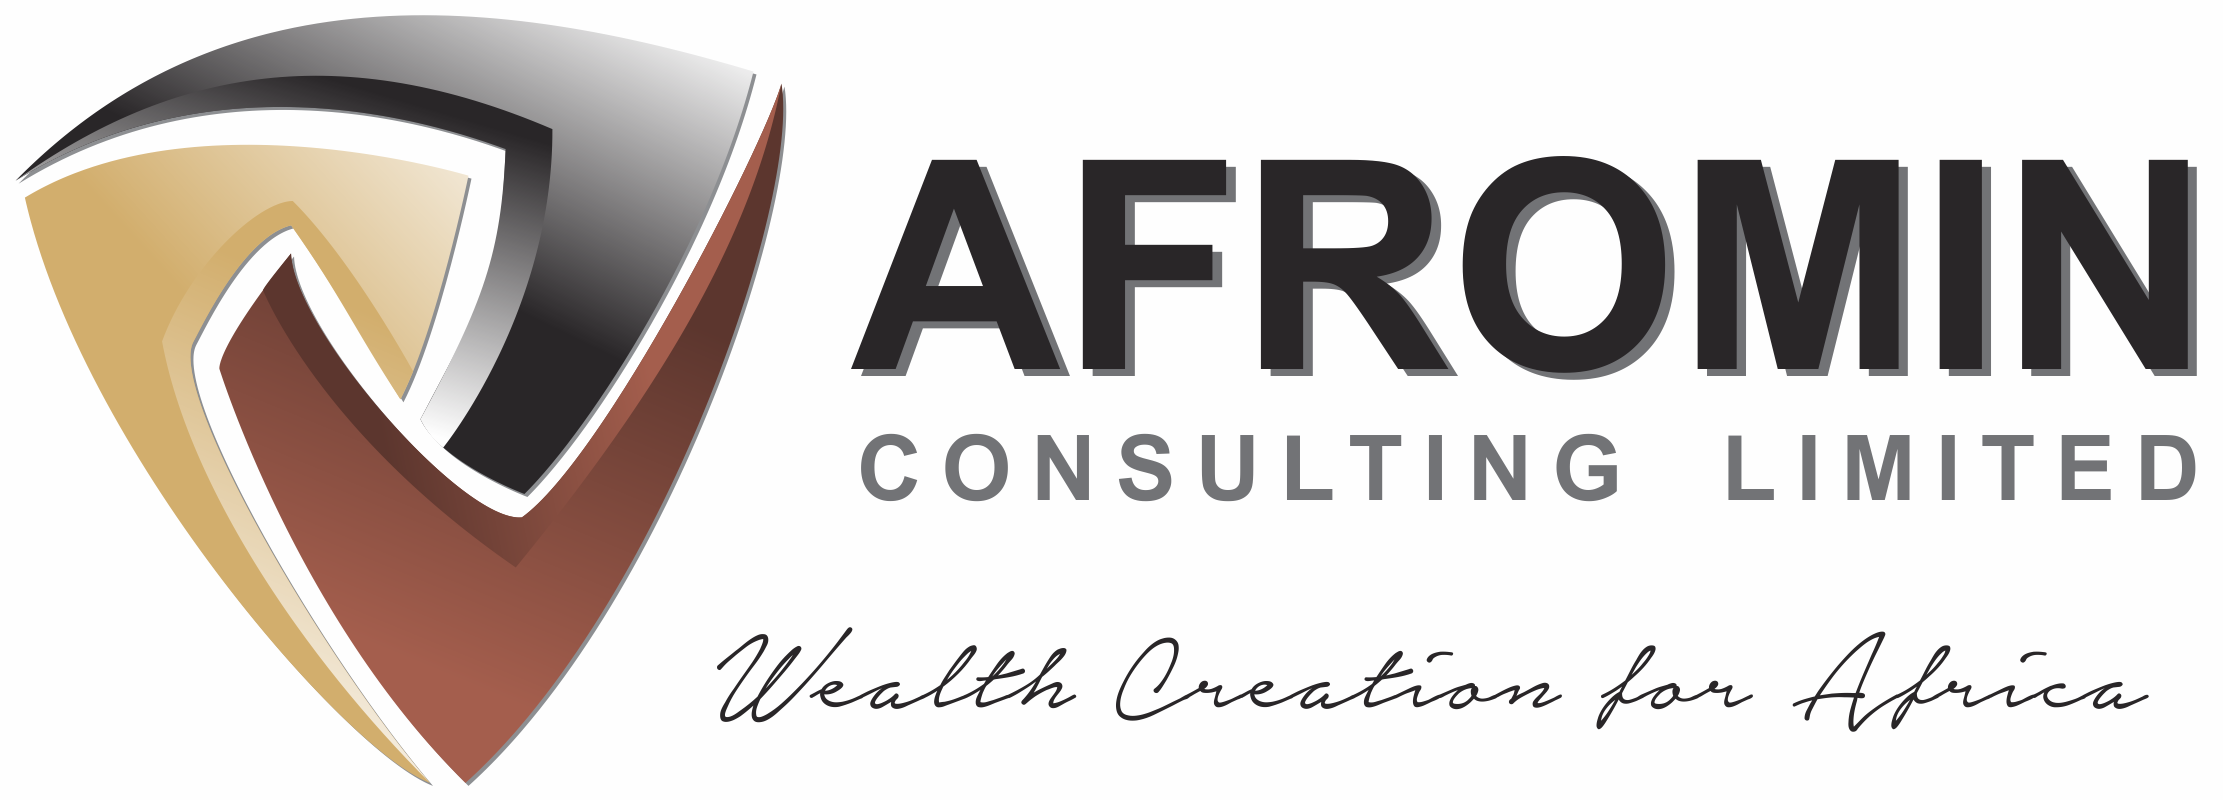 Afromin Consulting Limited